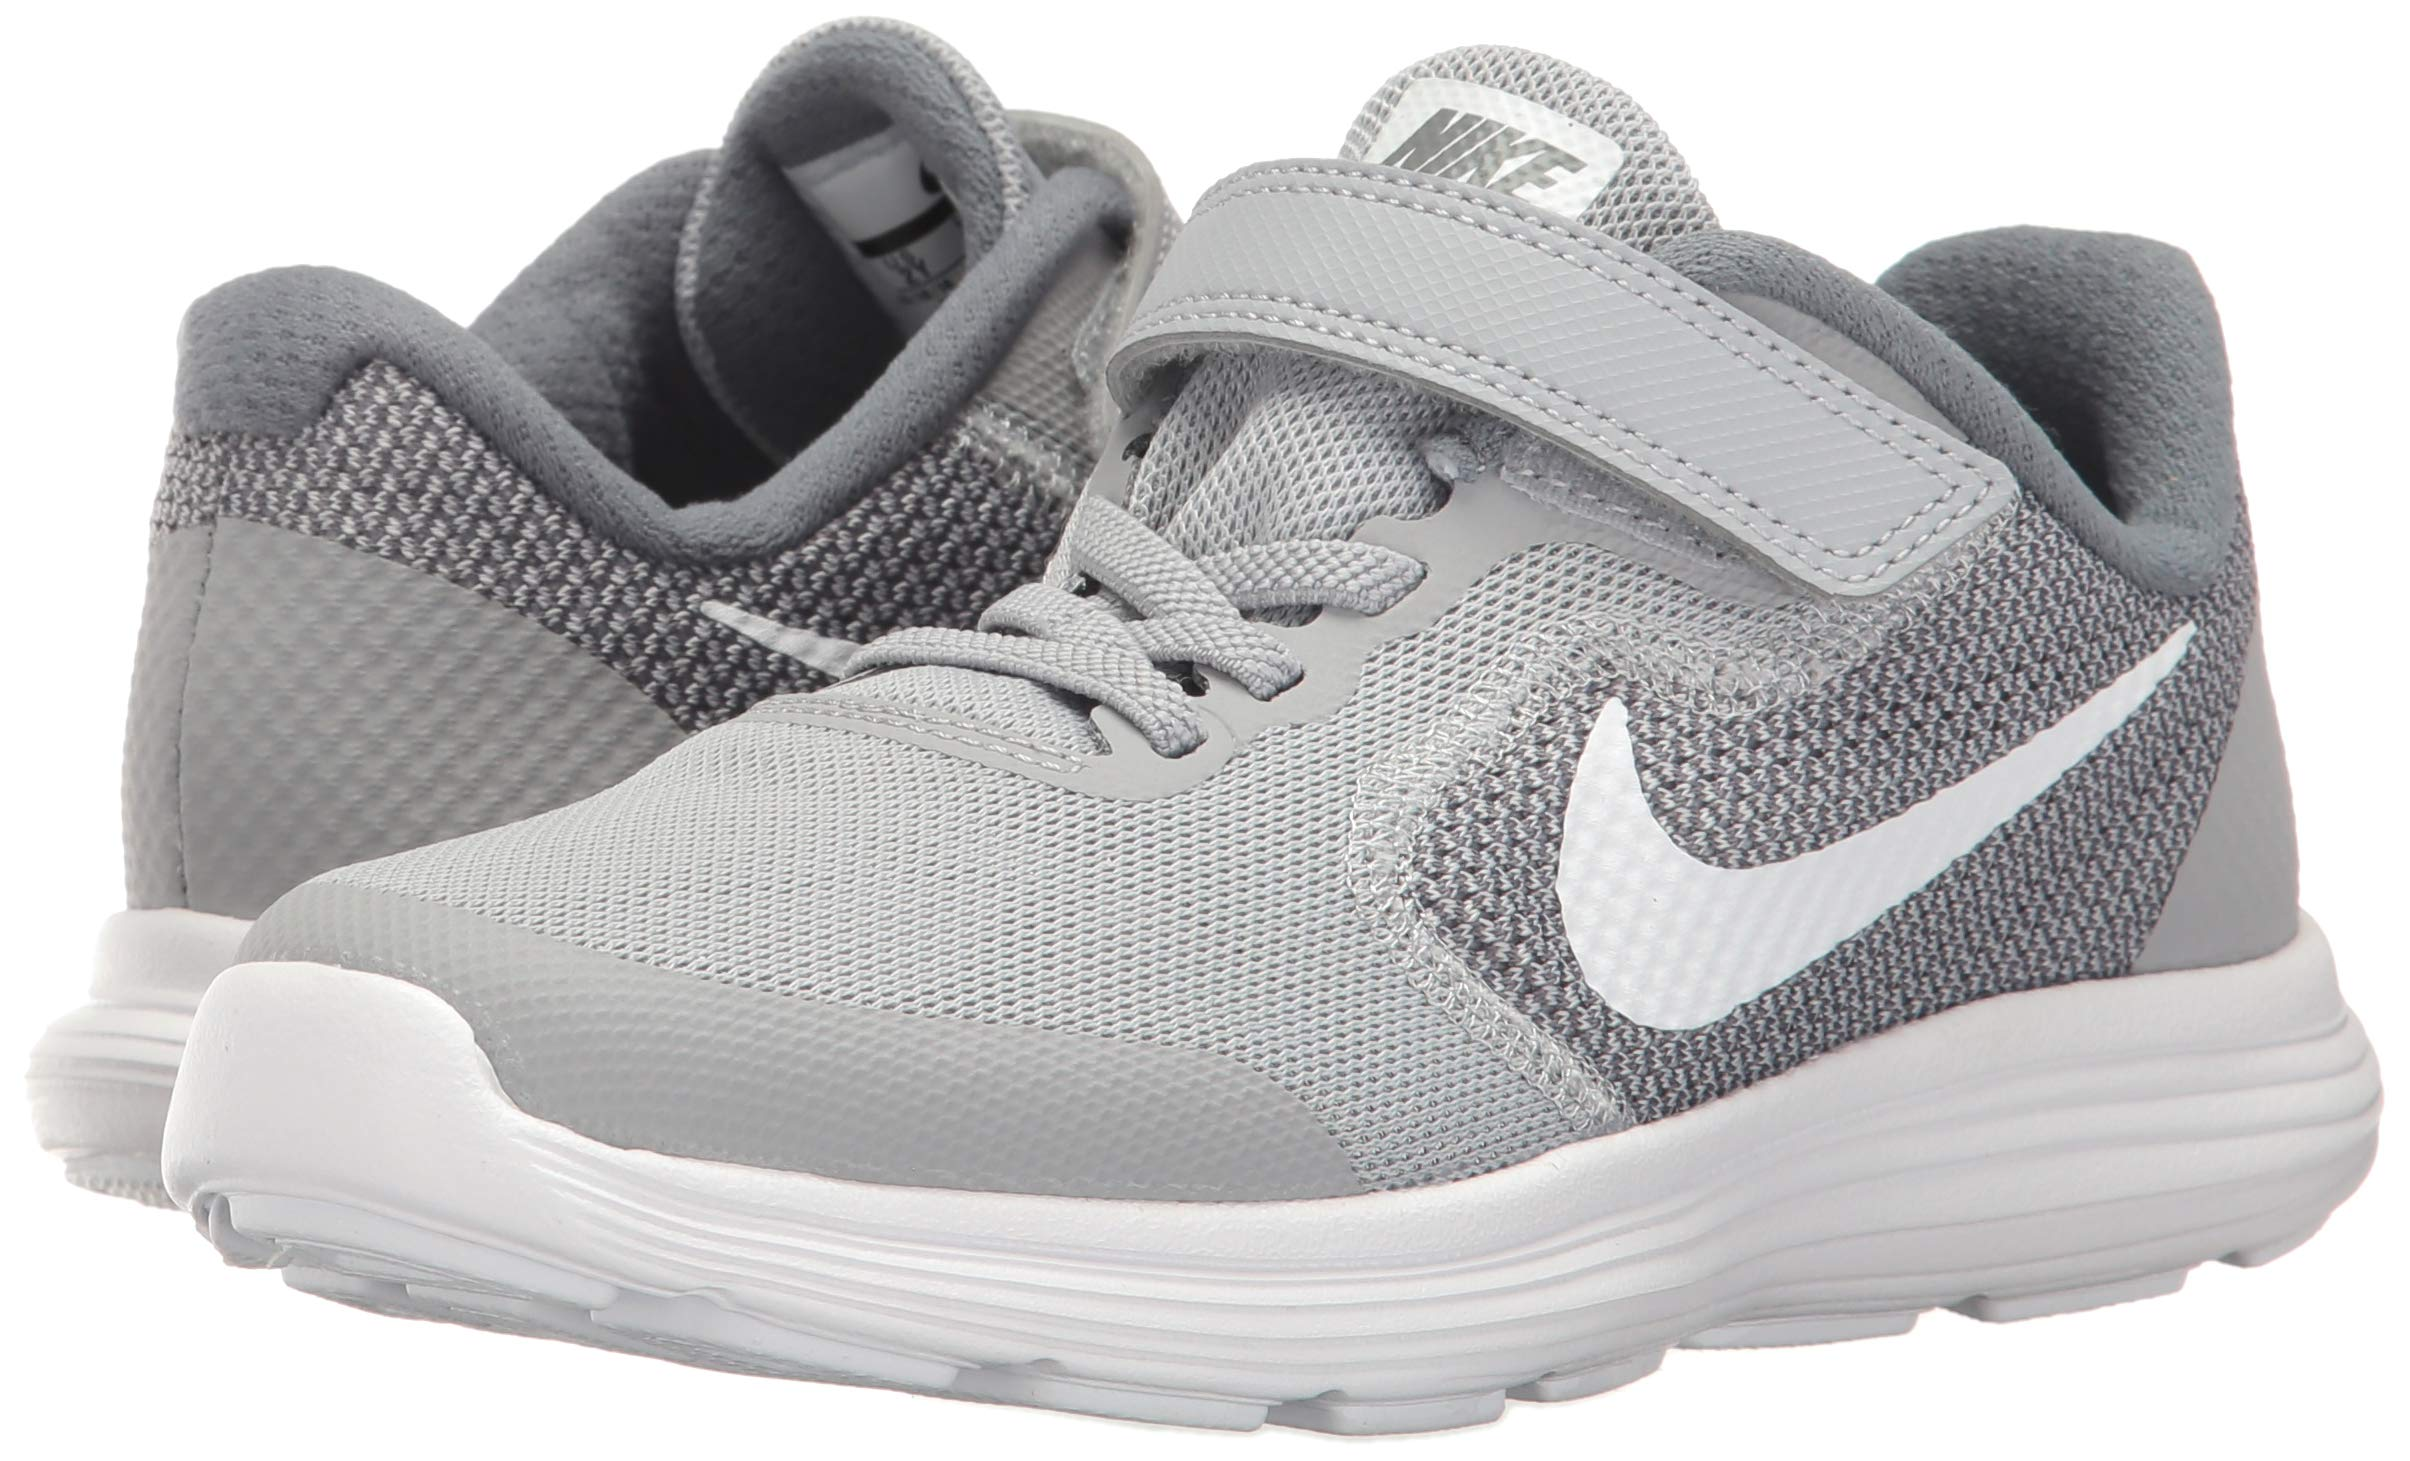 NIKE Kids' Revolution 3 (Psv) Running-Shoes, Wolf Grey/White/Cool Grey, 1 M US Little Kid by Nike (Image #5)